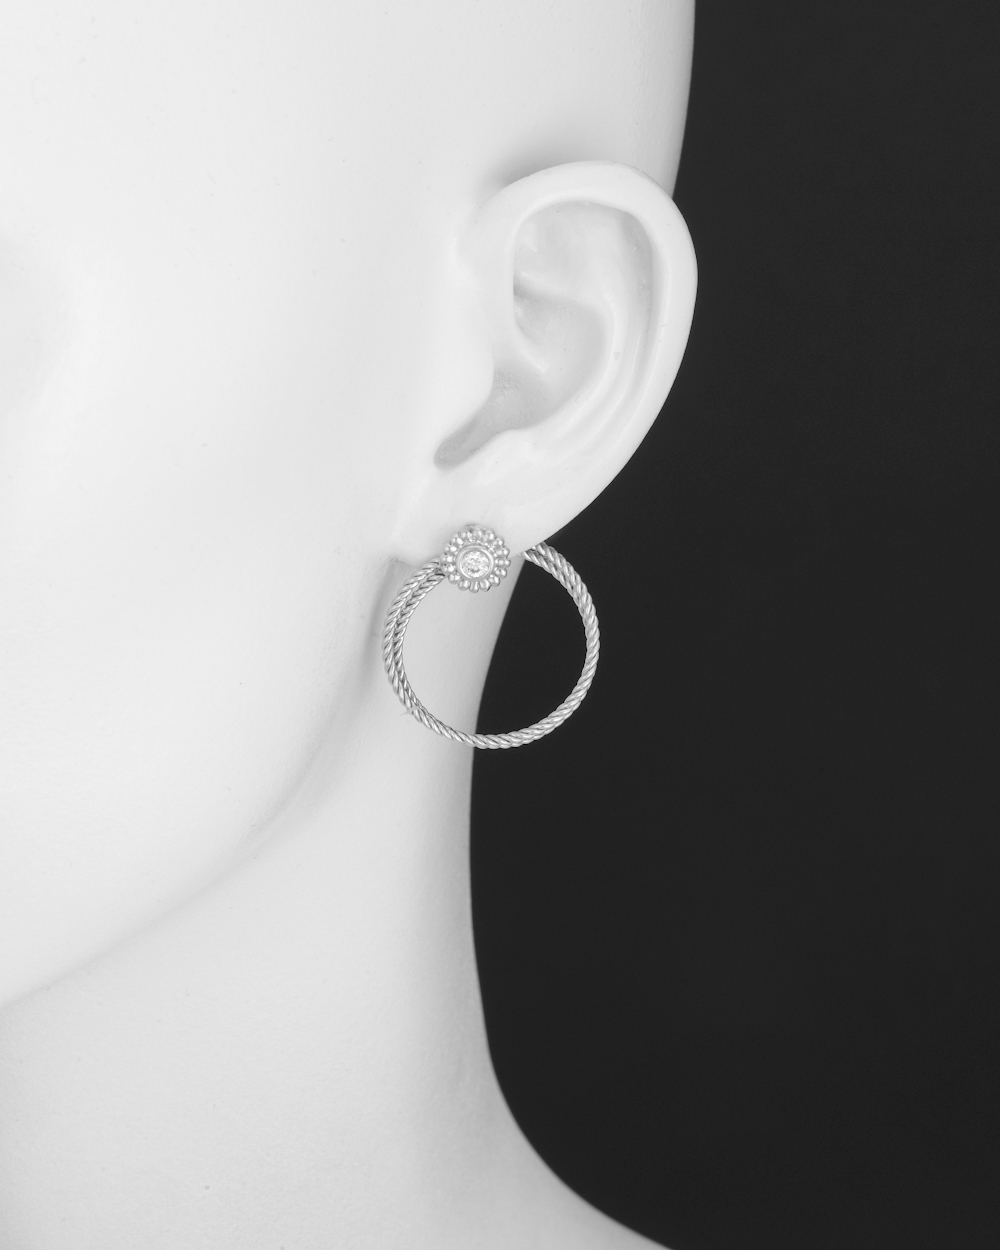 Bielka White Gold & Diamond Twisted Wire Hoop Earclips | Betteridge